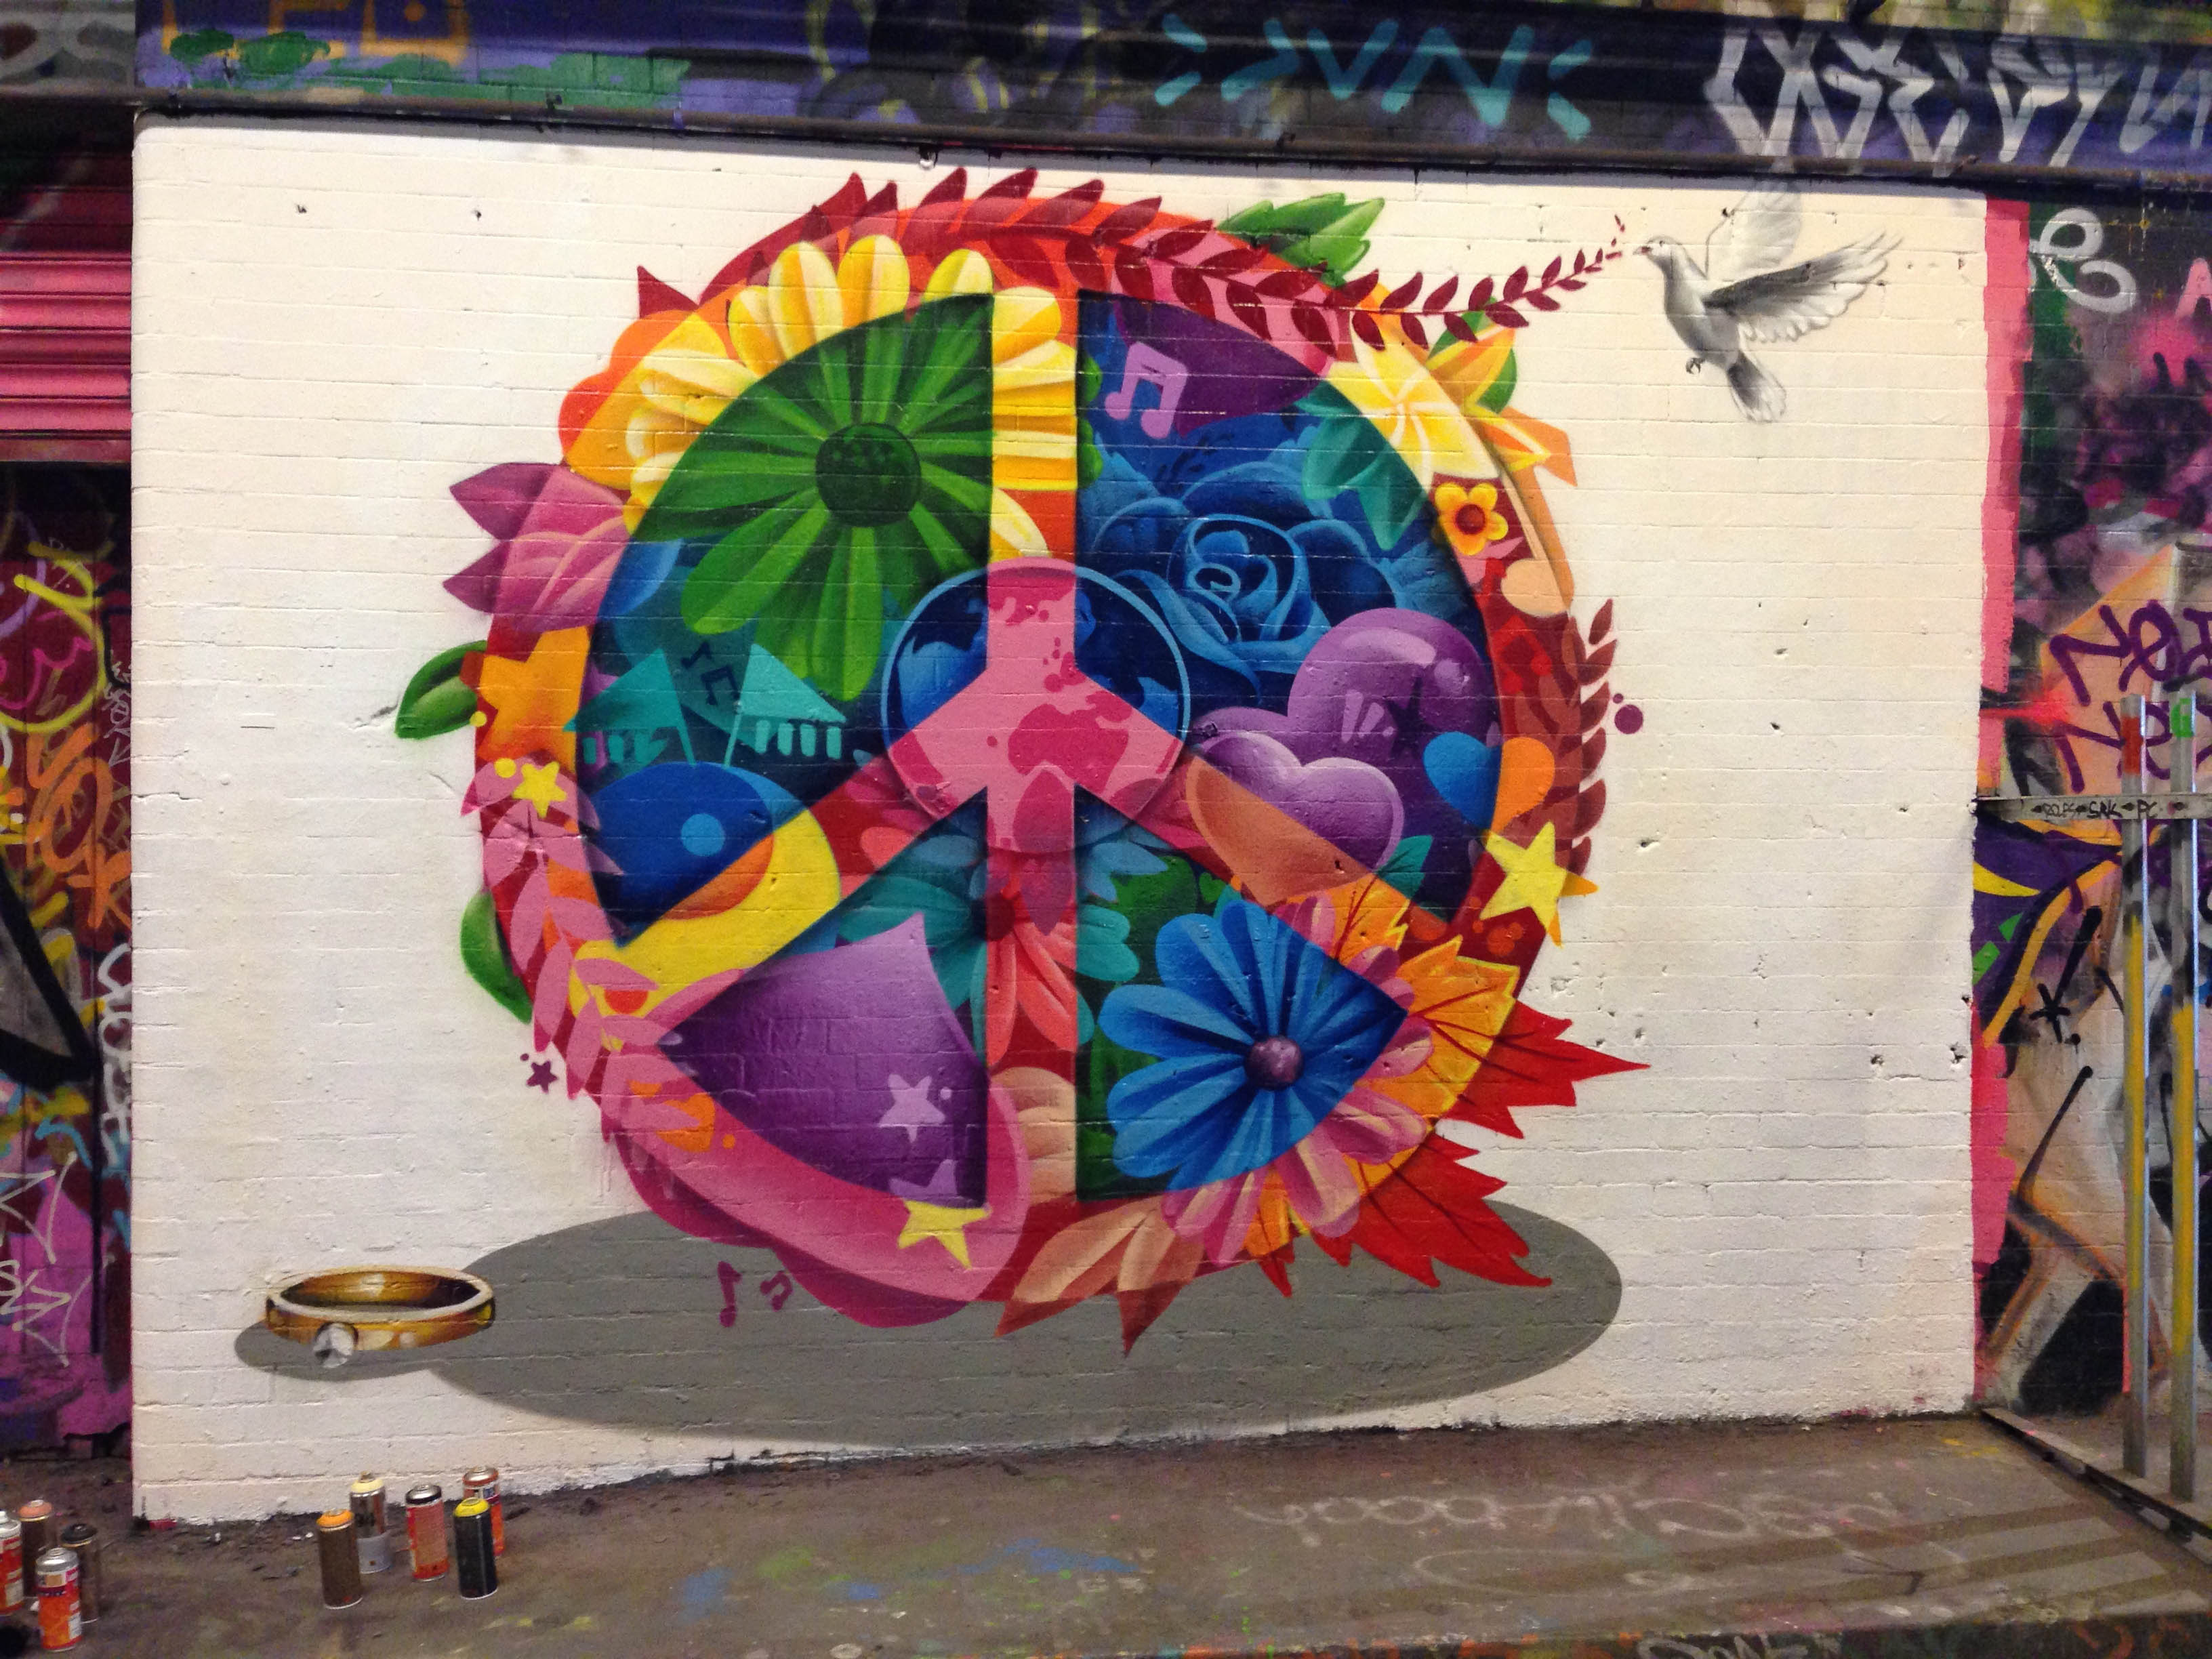 Unilever asked us to create a stunning piece of graffiti to celebrate world peace day we painted a stunning piece based around our interpretation of the